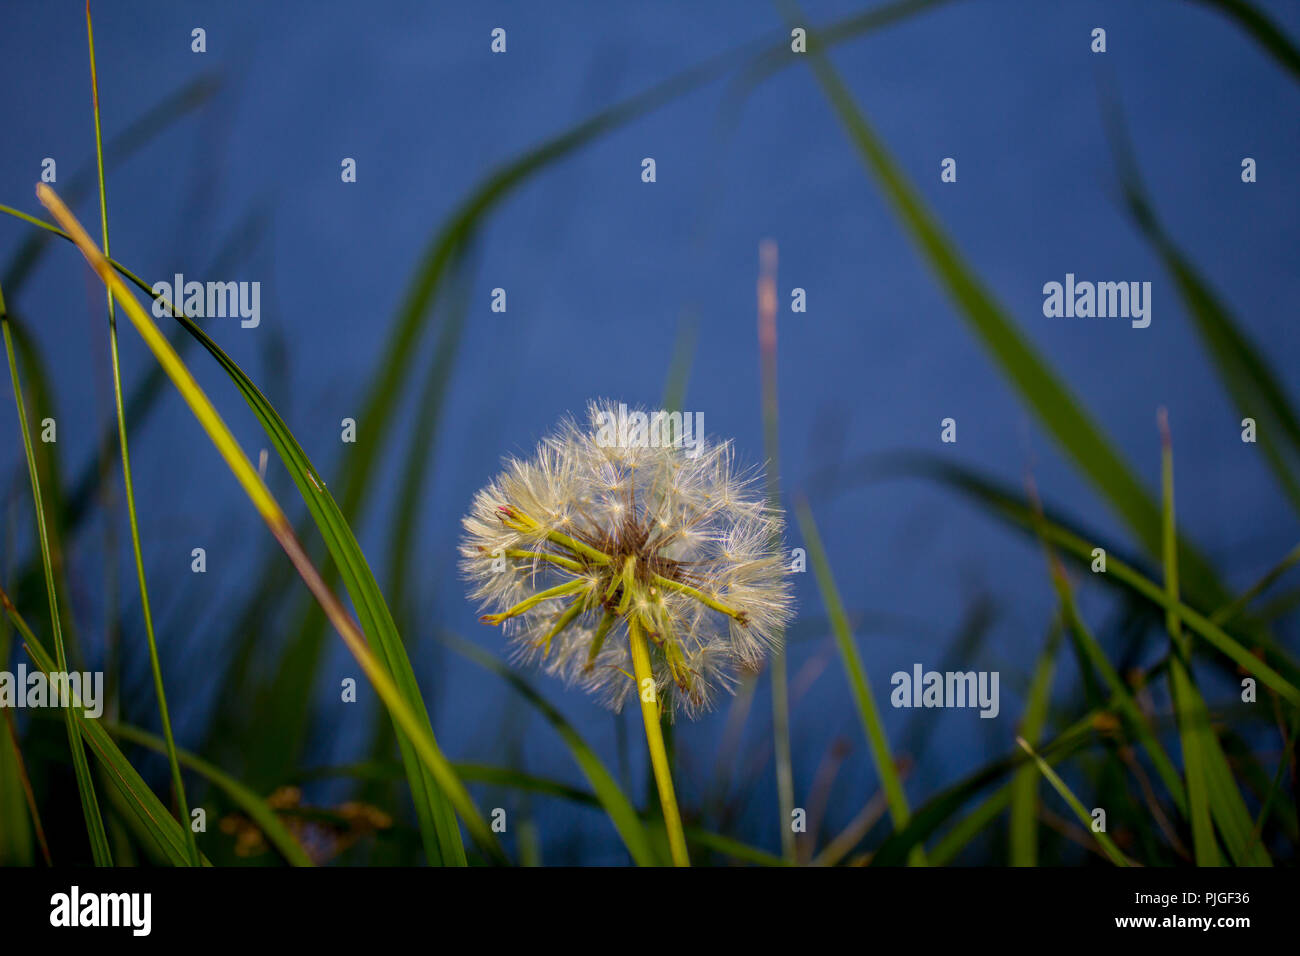 Dandelion Close Up Stock Photo